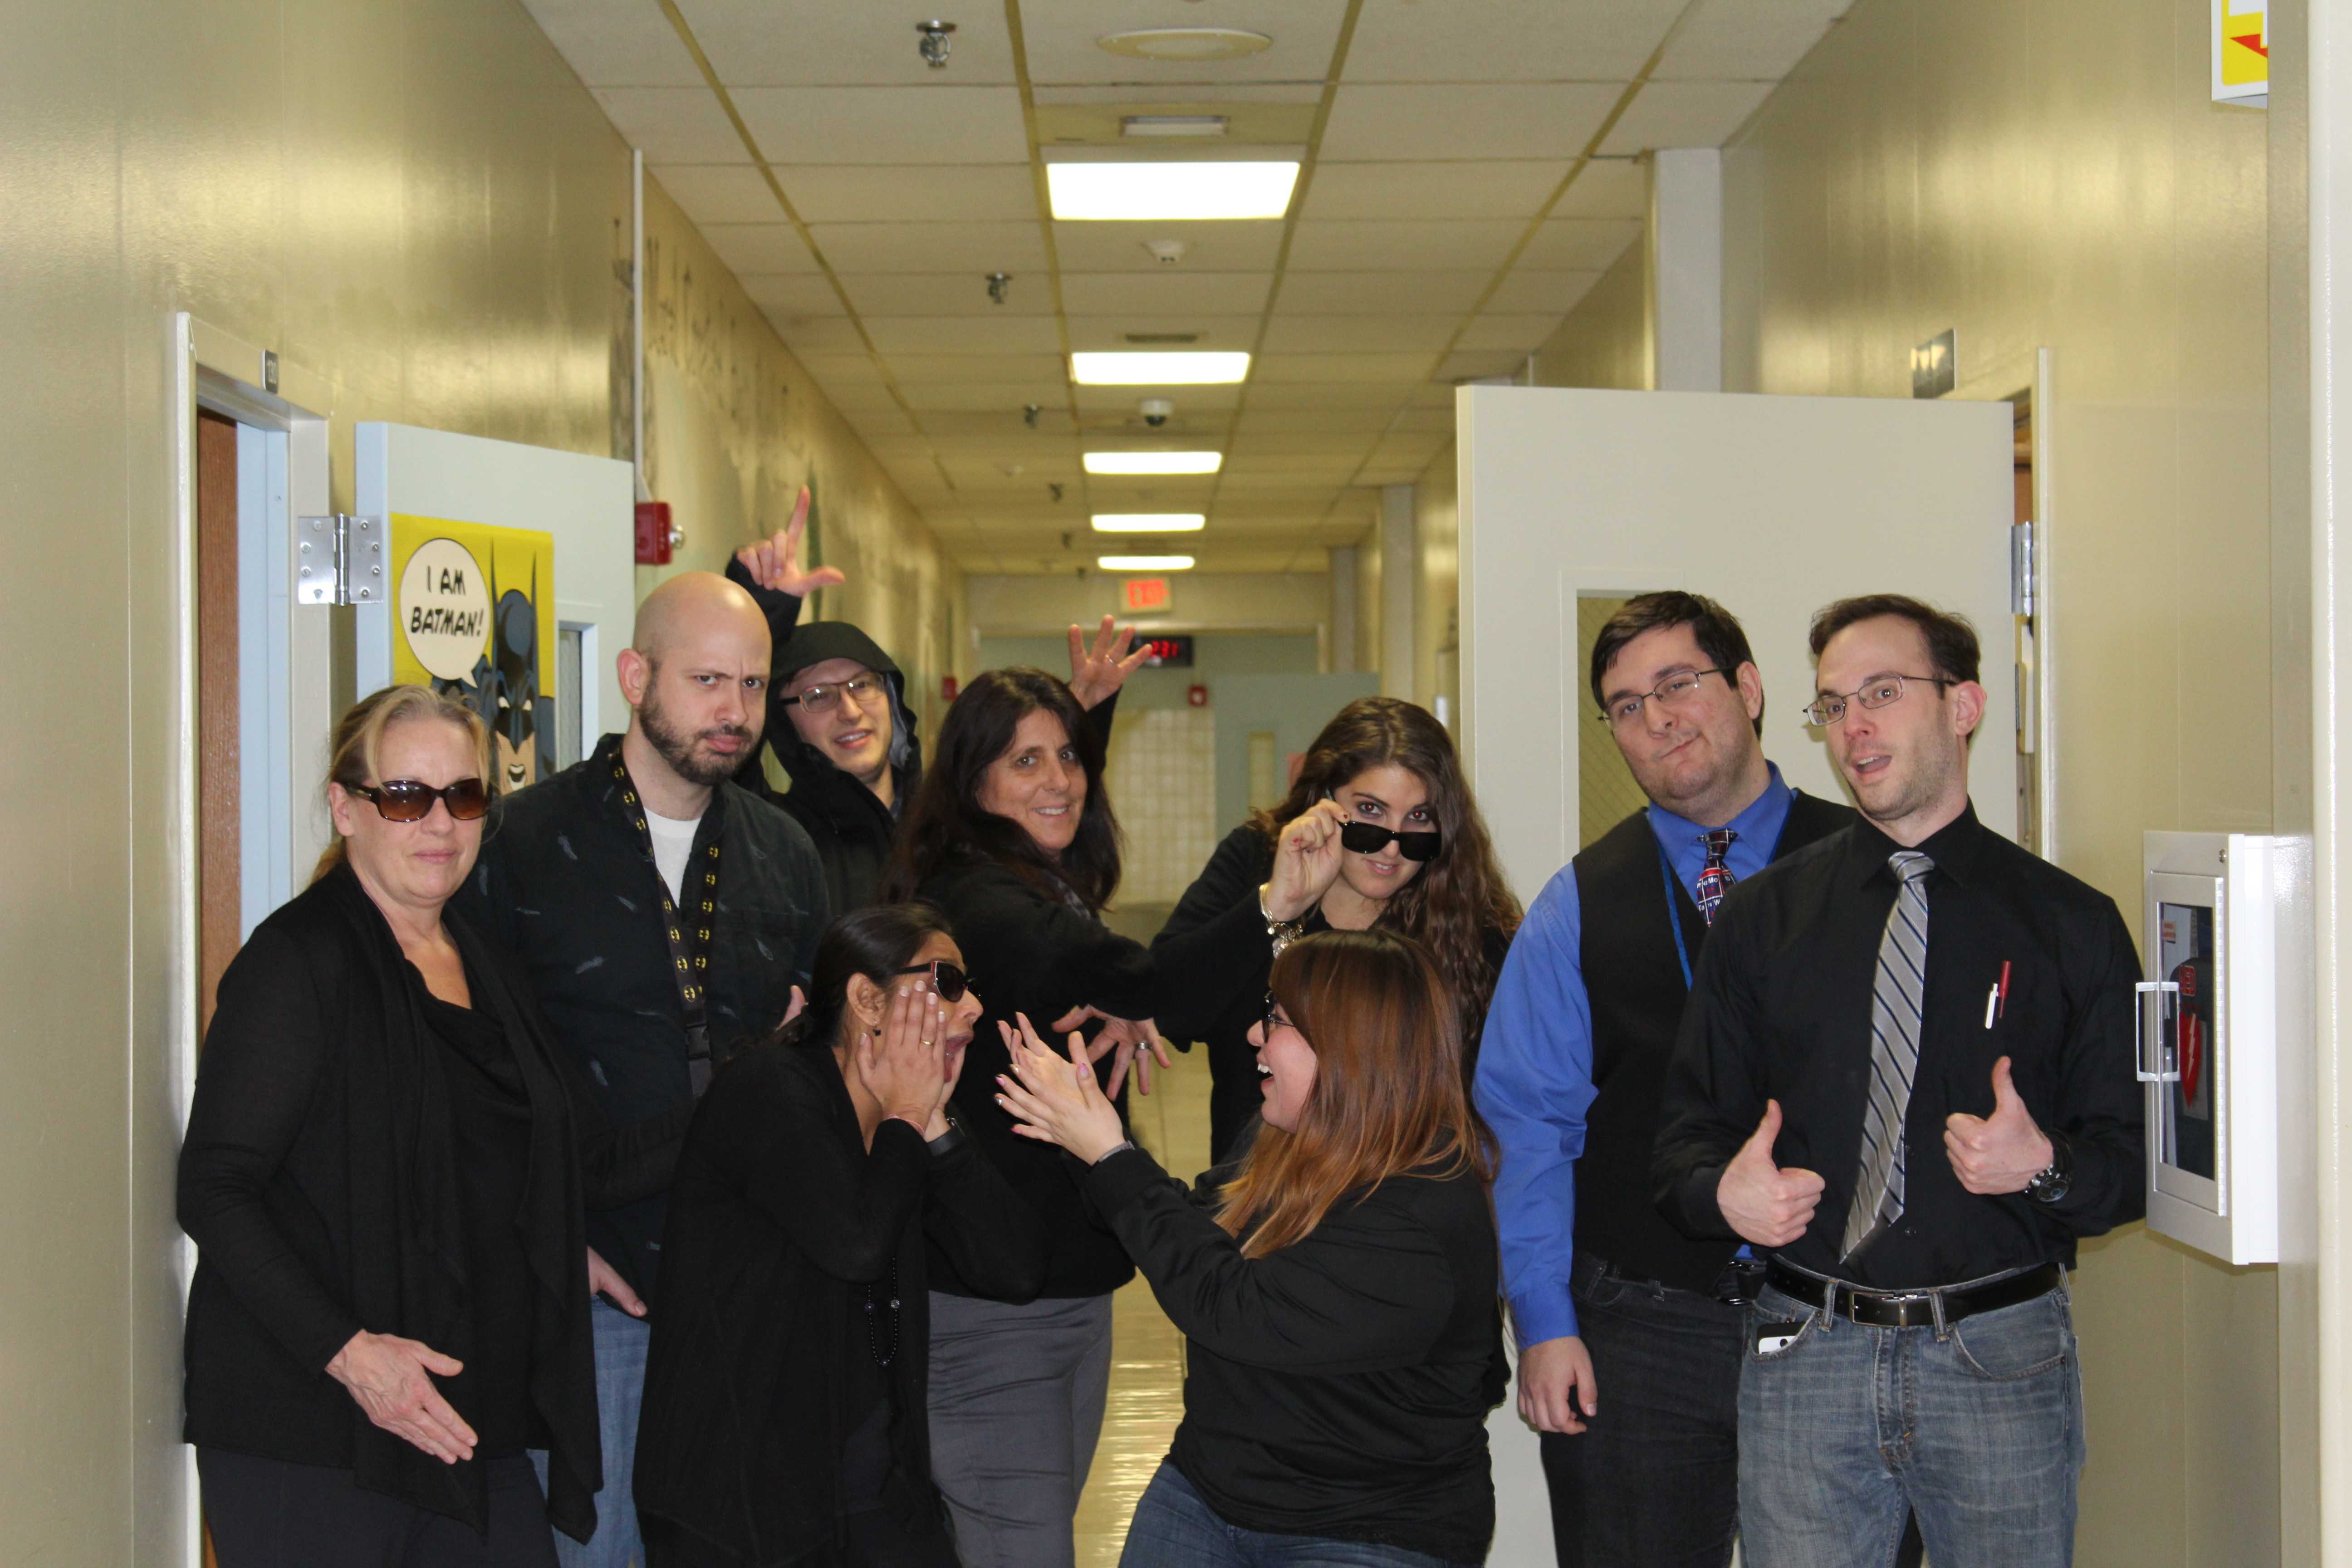 The science department poses for a silly picture in their 'Matrix'-based attire.